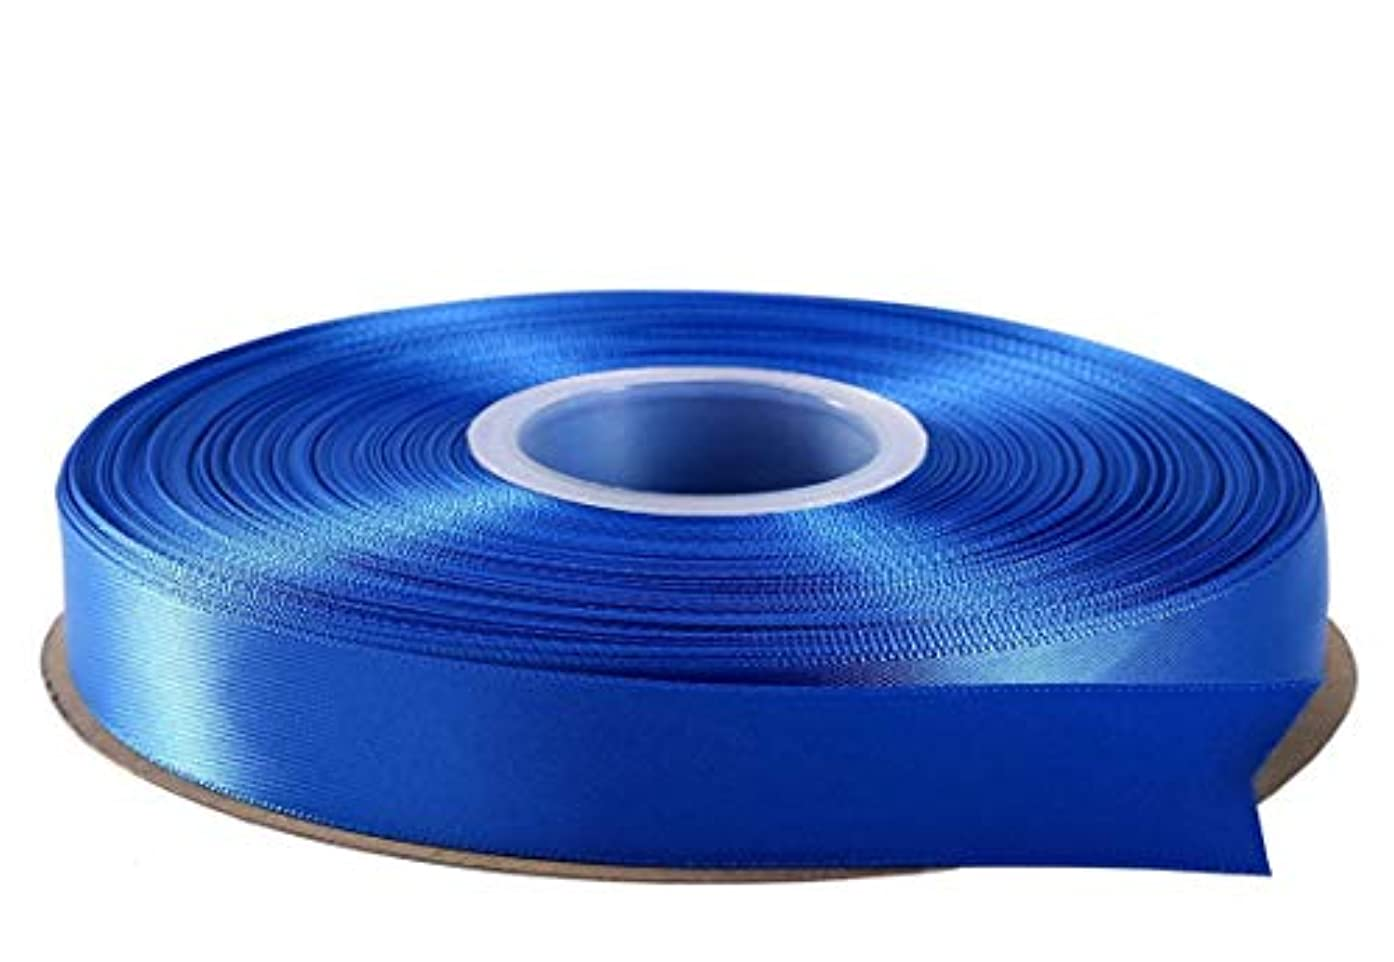 Duoqu 1/2 inch Wide Double Face Solid Satin Ribbon 50 Yards Roll Multiple Colors (Royal)